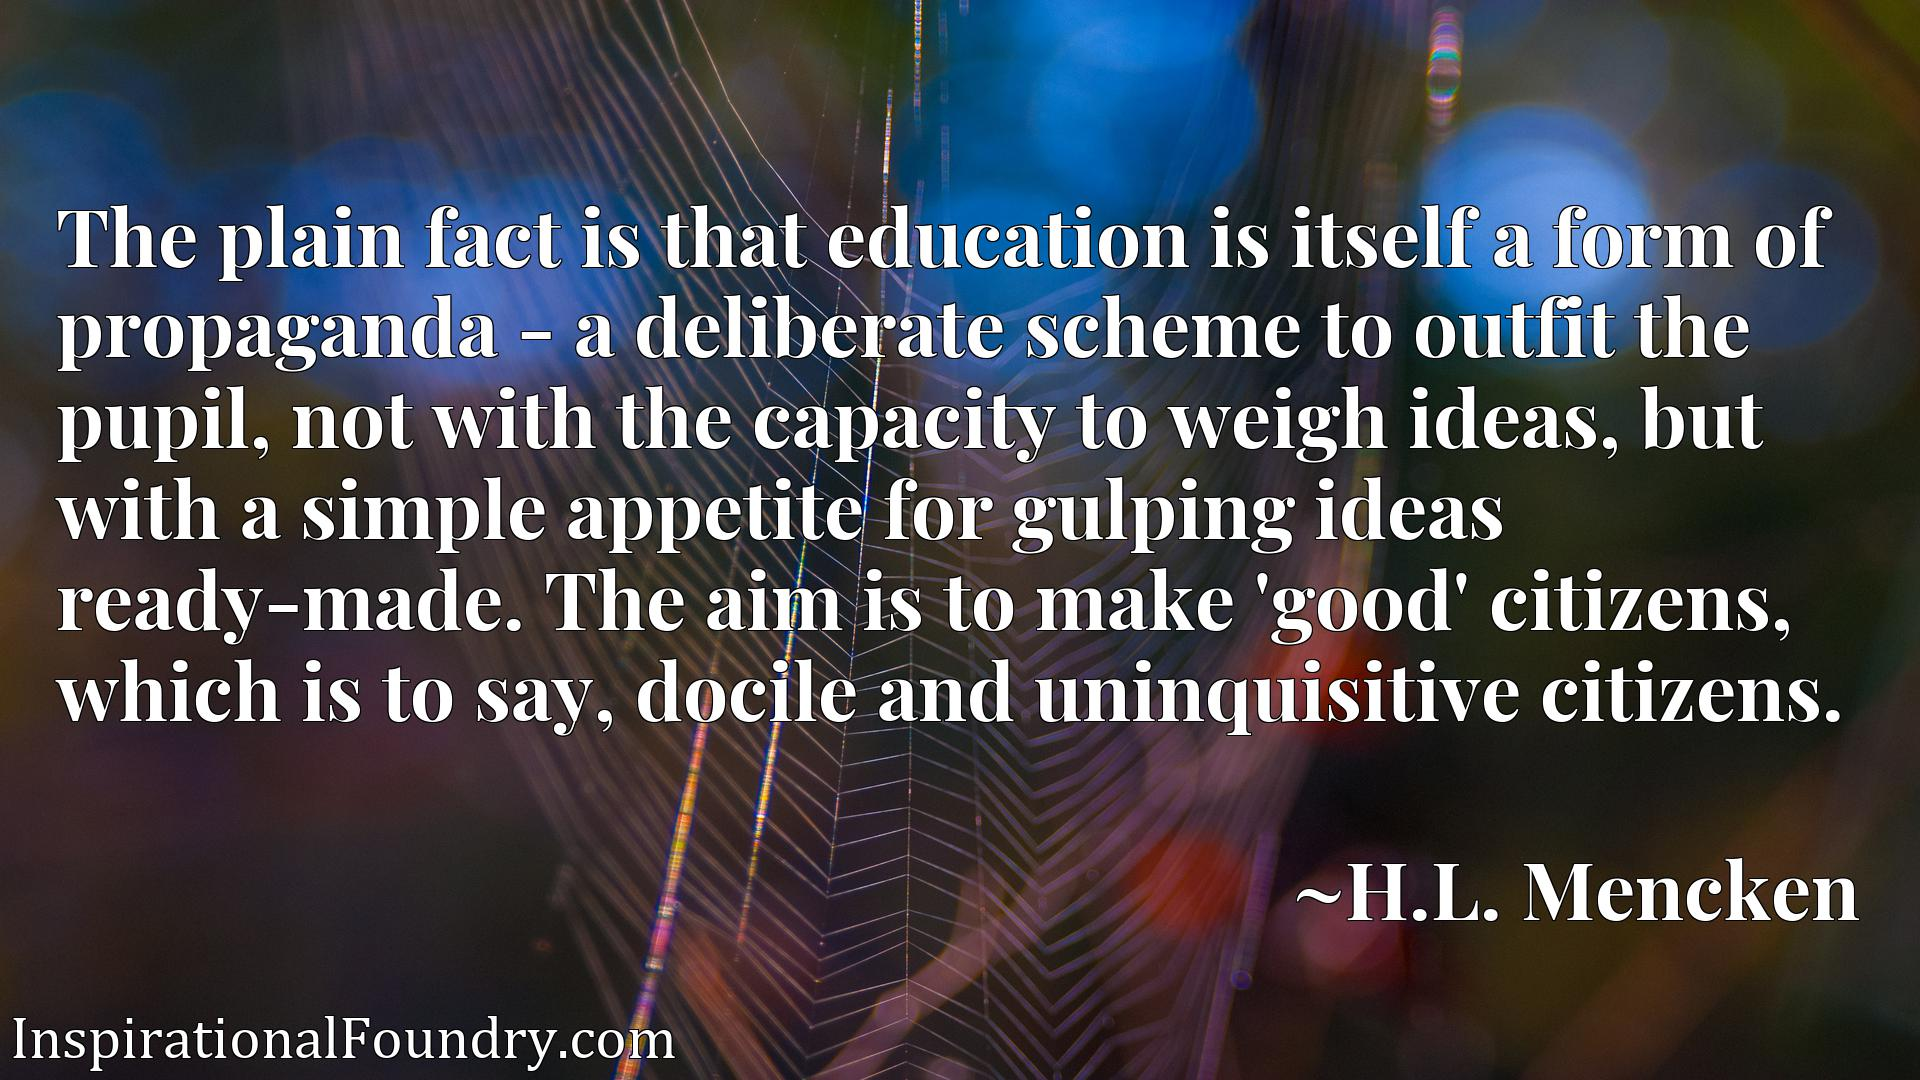 The plain fact is that education is itself a form of propaganda - a deliberate scheme to outfit the pupil, not with the capacity to weigh ideas, but with a simple appetite for gulping ideas ready-made. The aim is to make 'good' citizens, which is to say, docile and uninquisitive citizens.